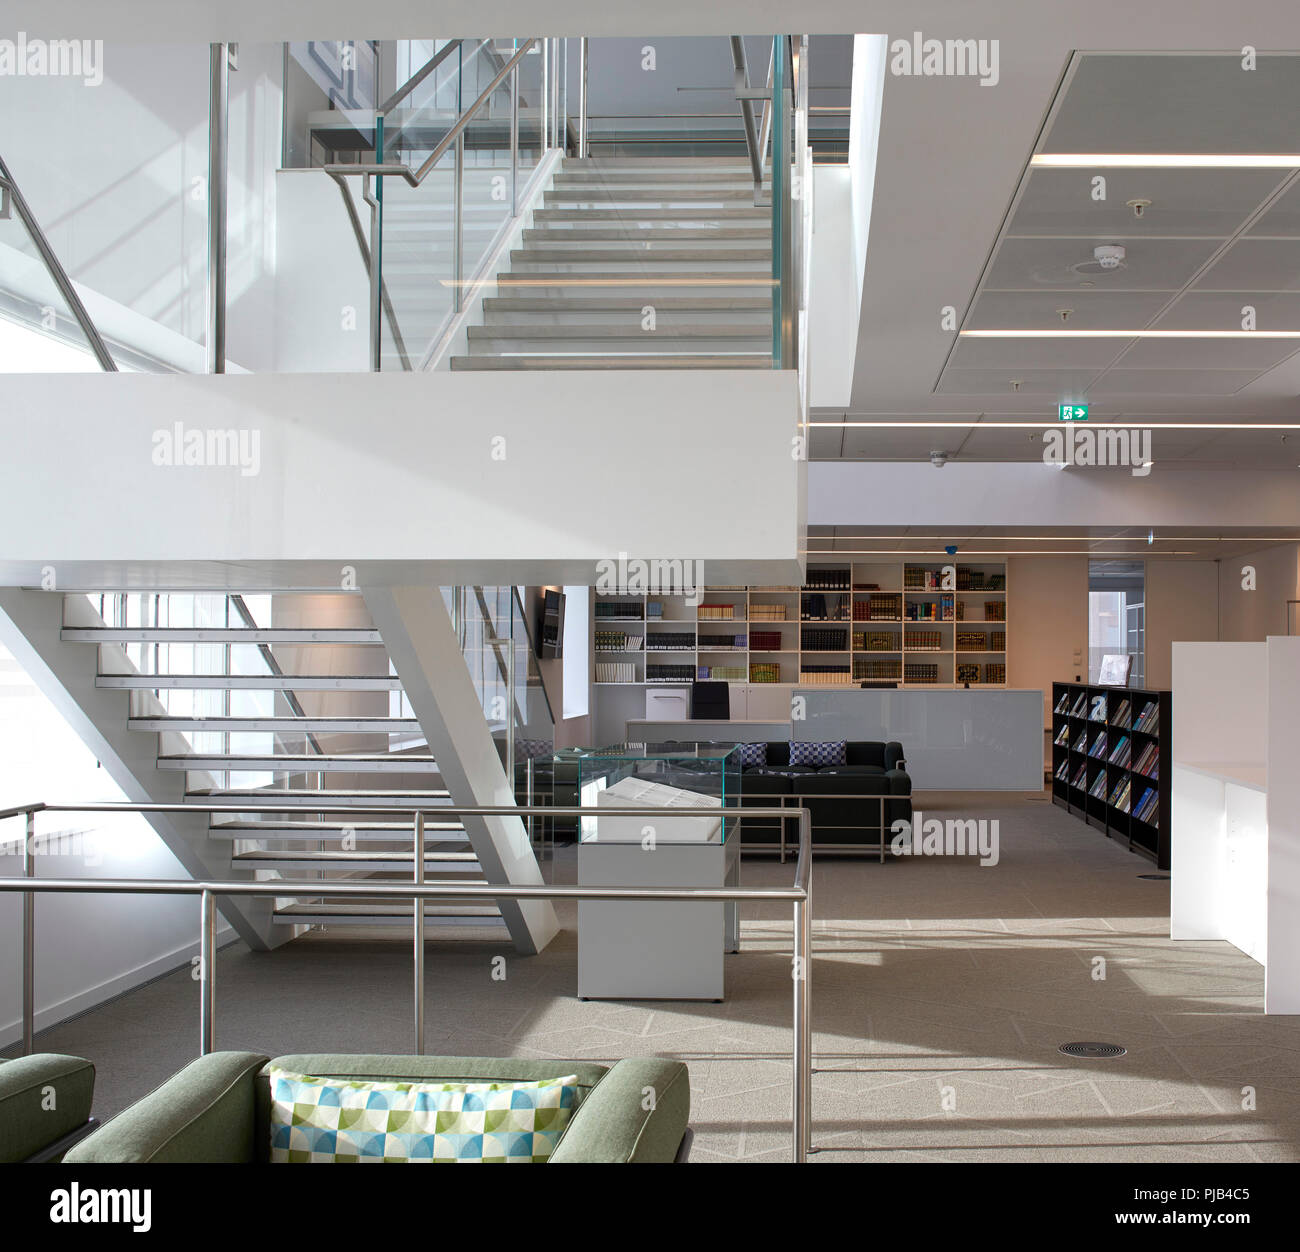 Stair Case Bannister Stock Photos Amp Stair Case Bannister Stock Images Alamy